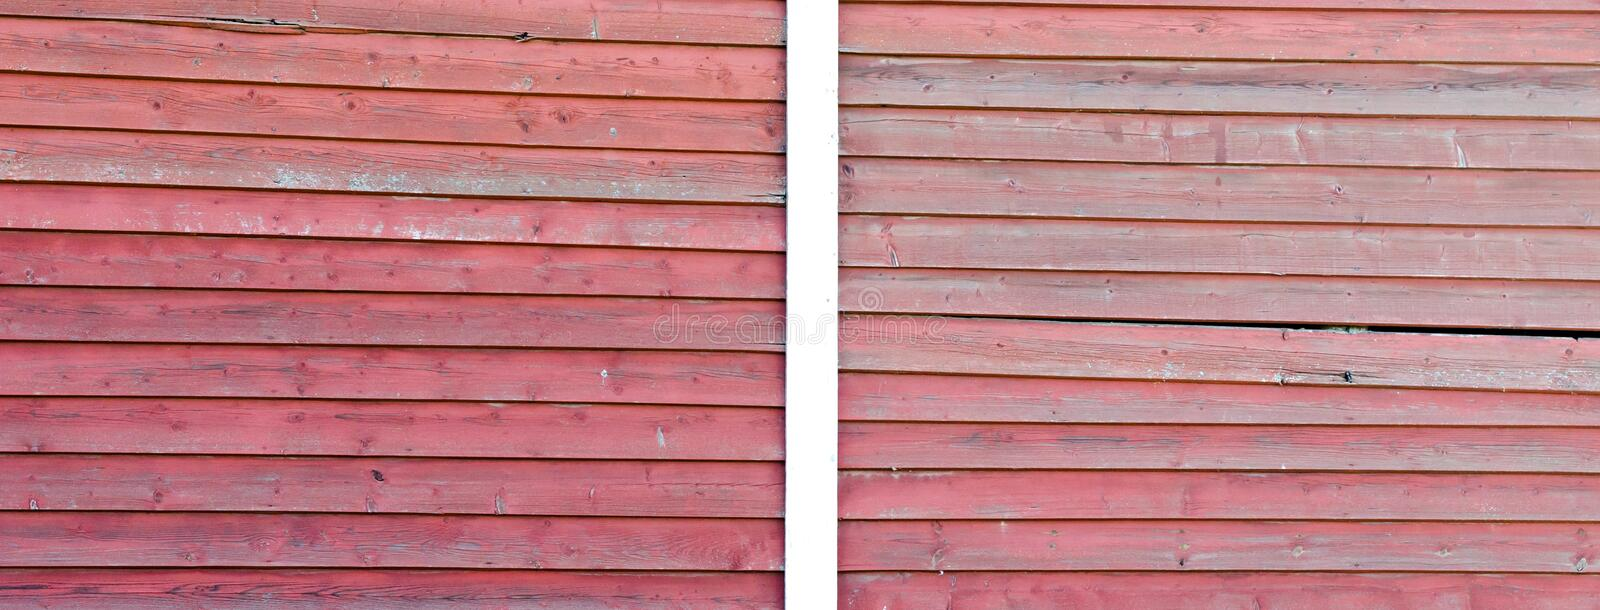 Red wood texture background. Red wood texture, old stable wall stock image